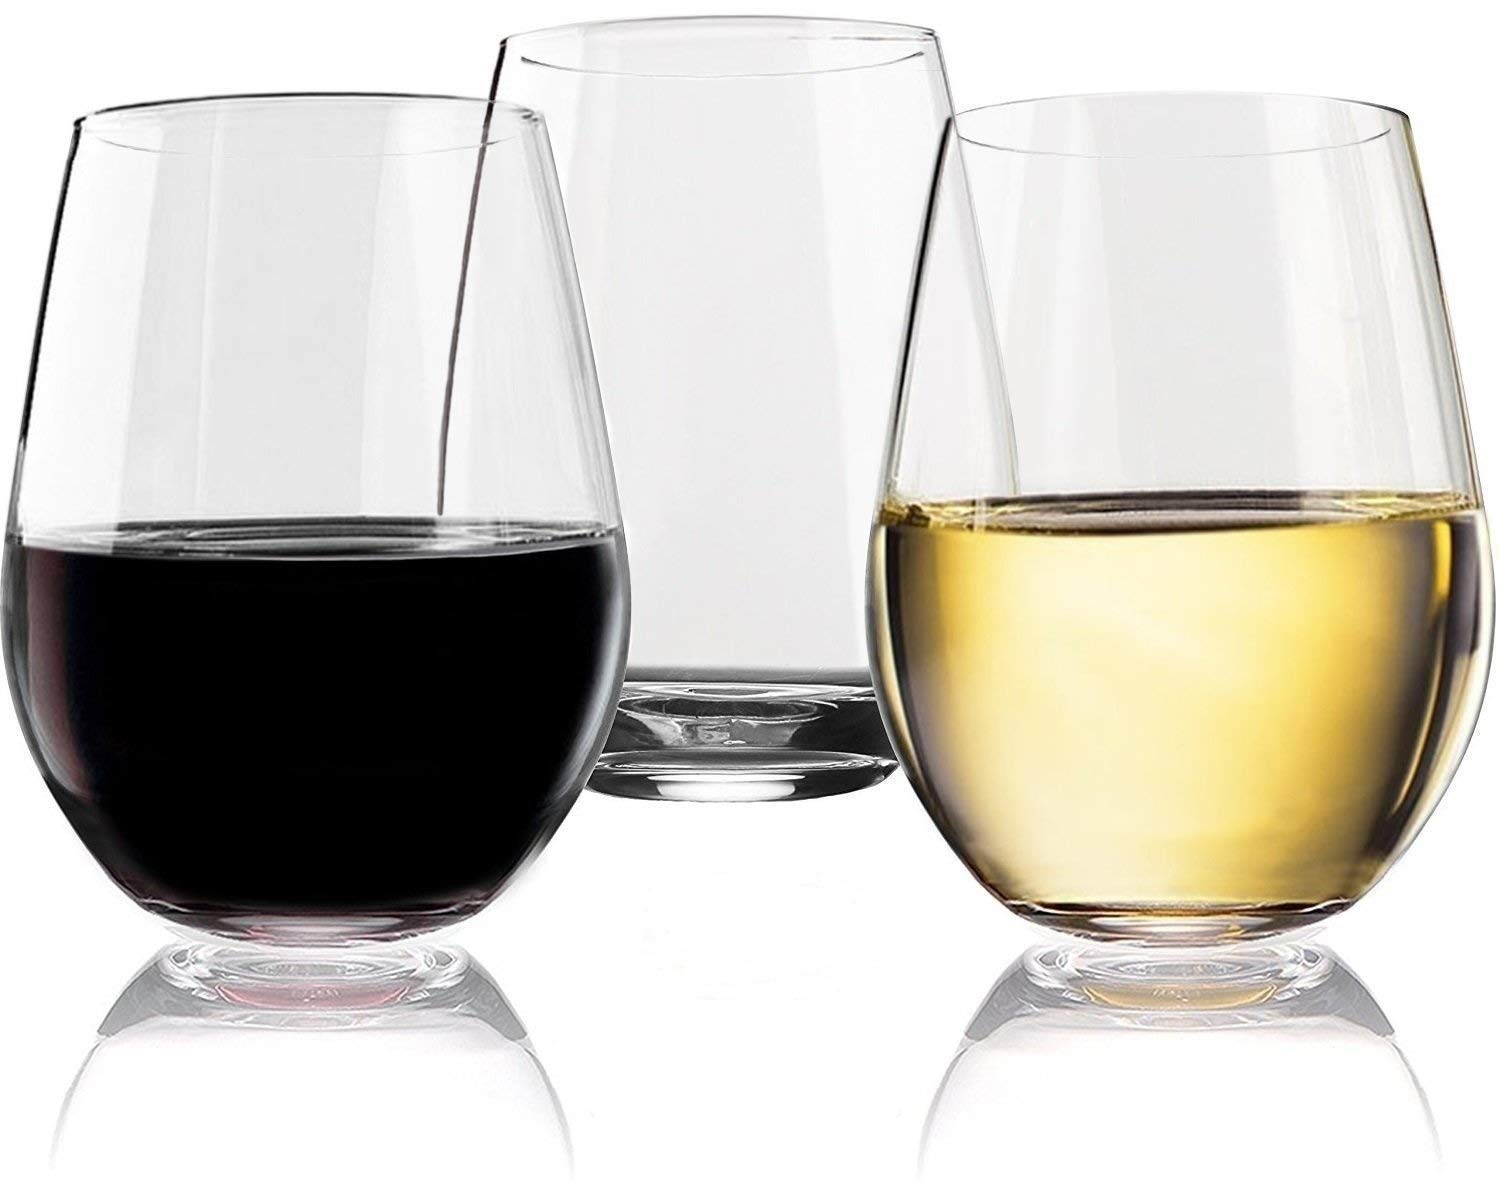 Vivocci Unbreakable Elegant Plastic Stemless Wine Glasses 20 oz | 100% Tritan Heavy Base | Shatterproof Glassware | Ideal For Cocktails & Scotch | Perfect For Homes & Bars | Dishwasher Safe | Set of 2